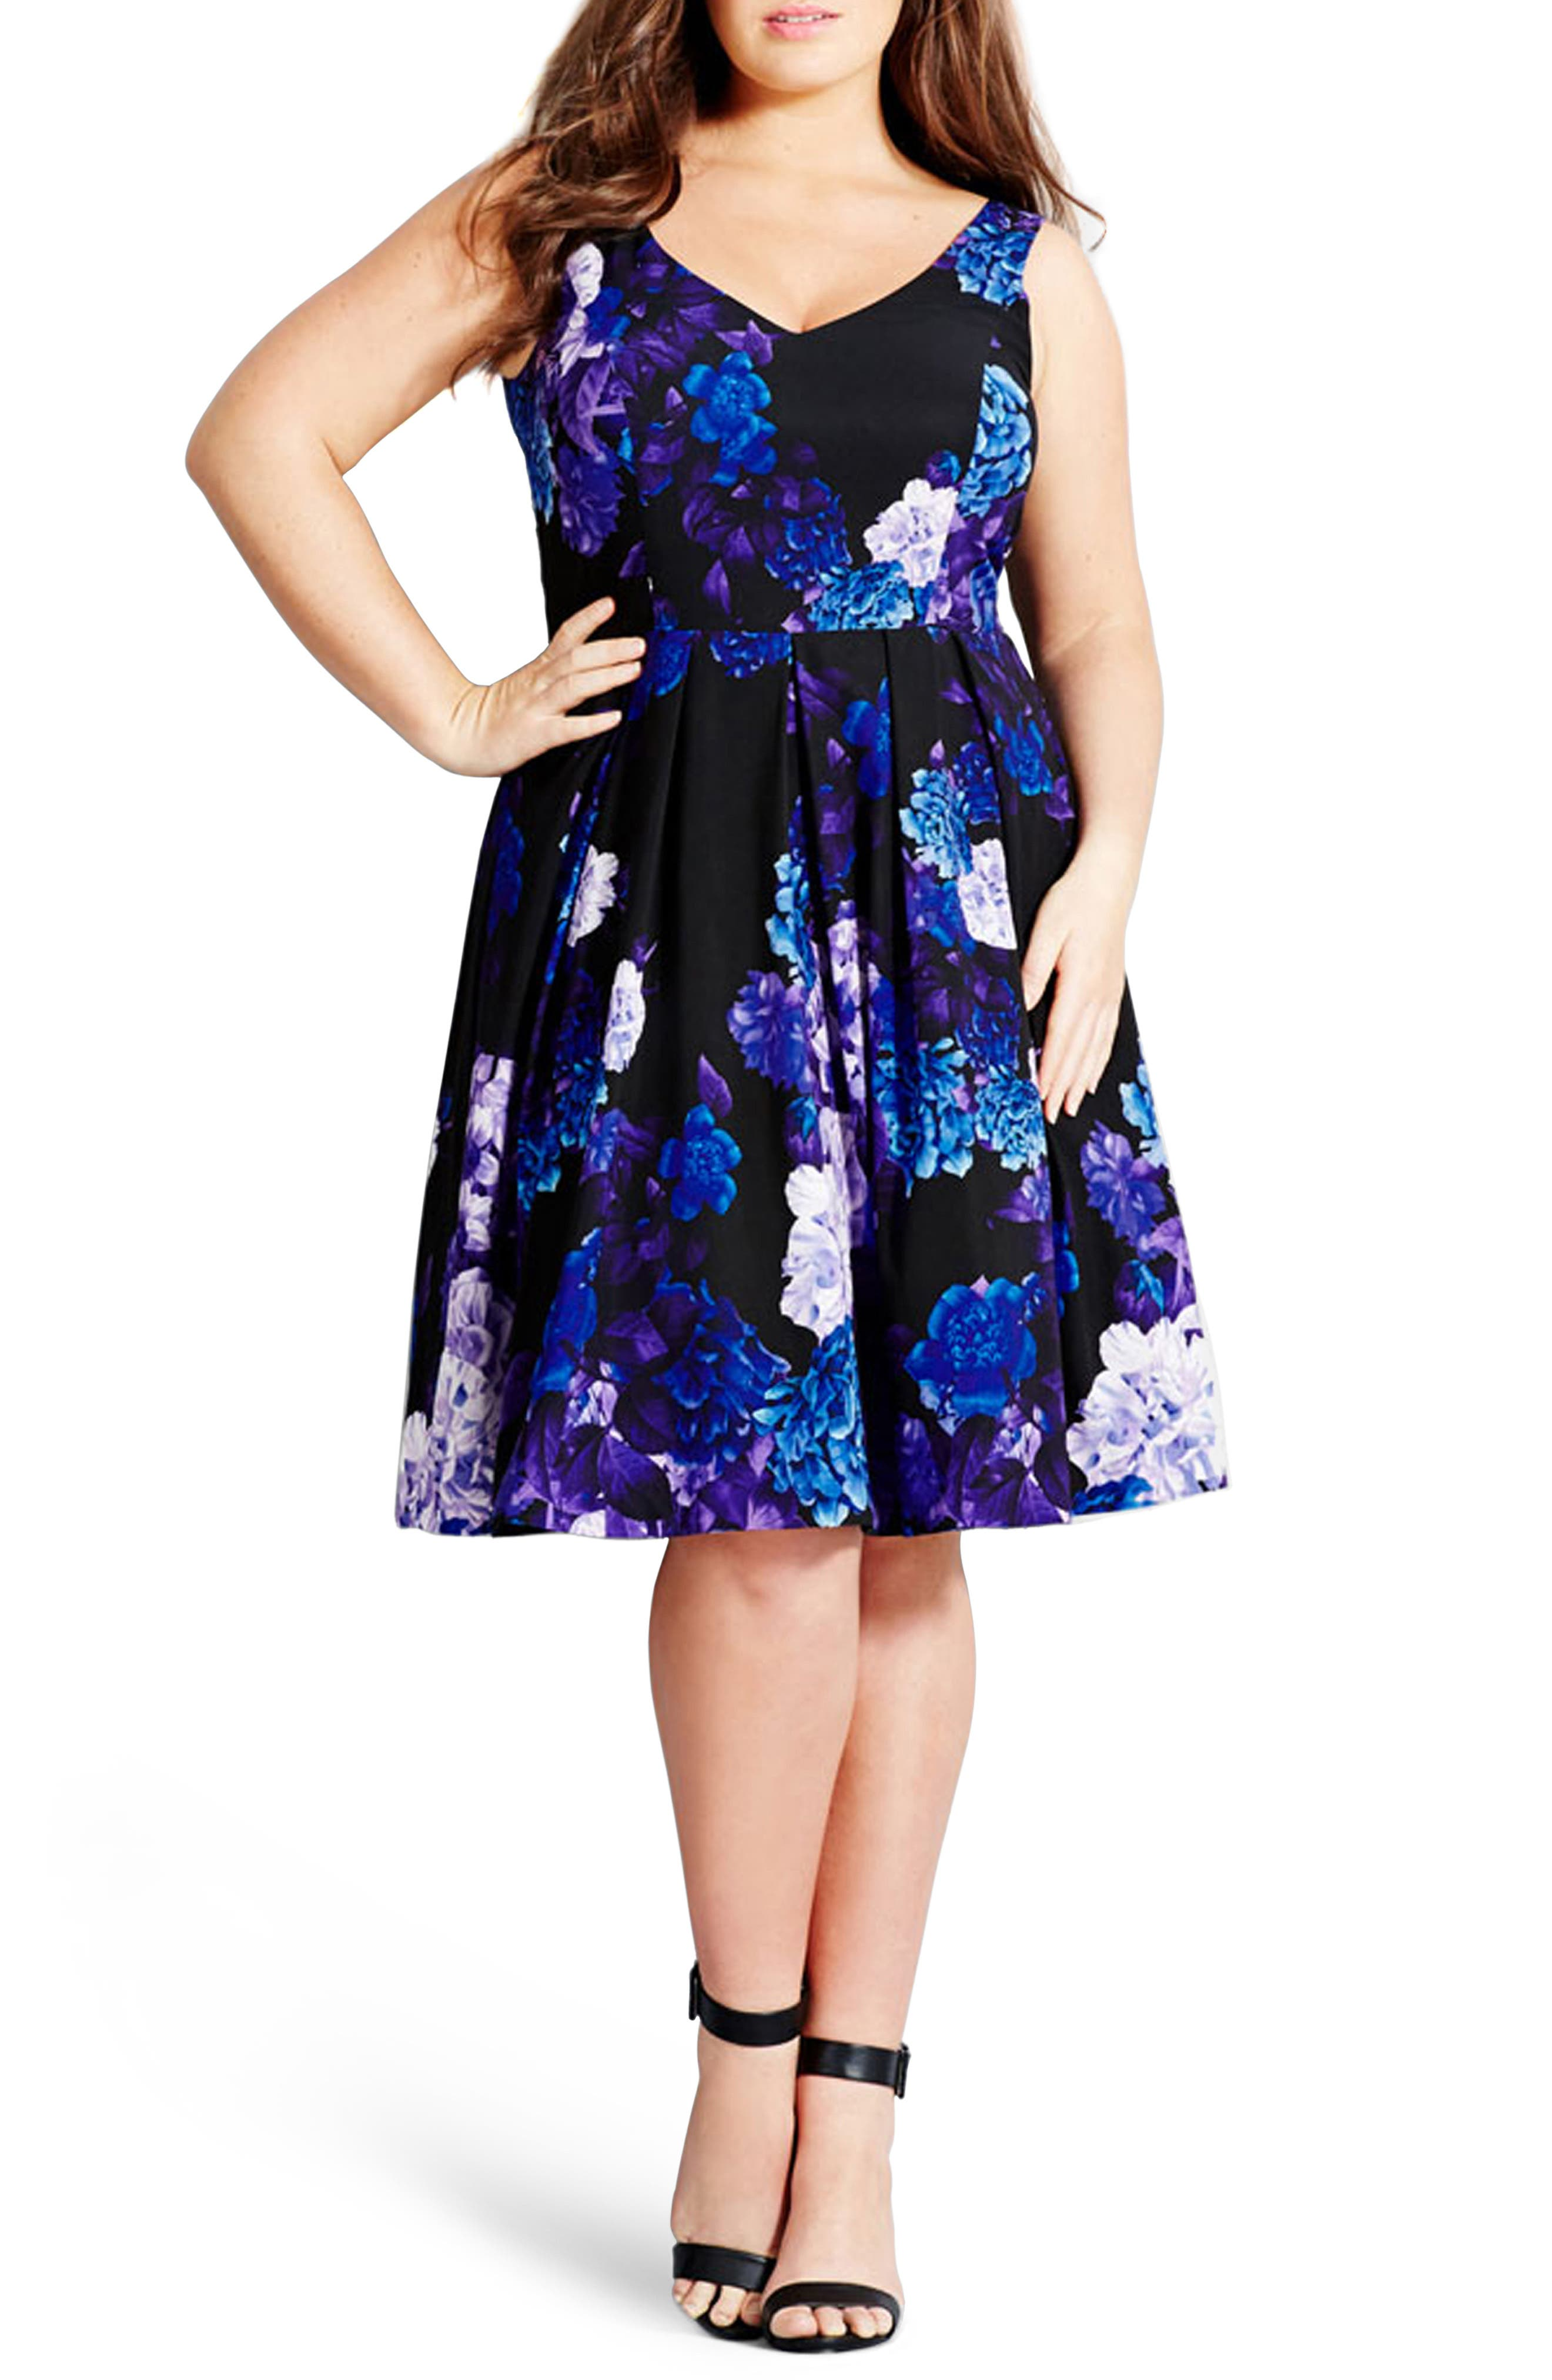 Alternate Image 1 Selected - City Chic Hydrangea Print Dress (Plus Size)